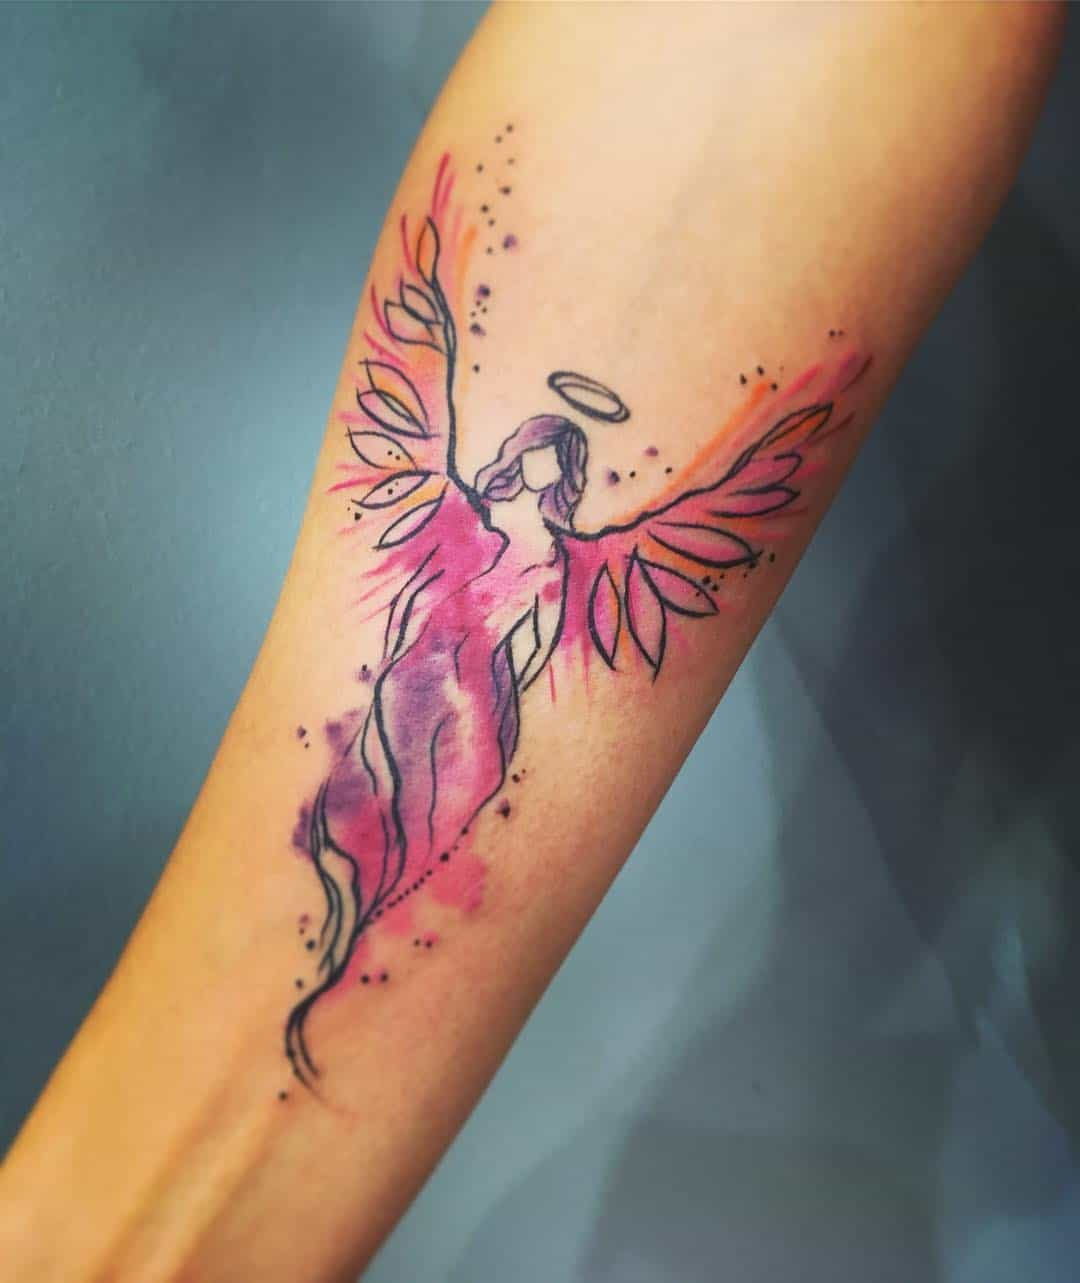 Angel tattoo by @klarastacova